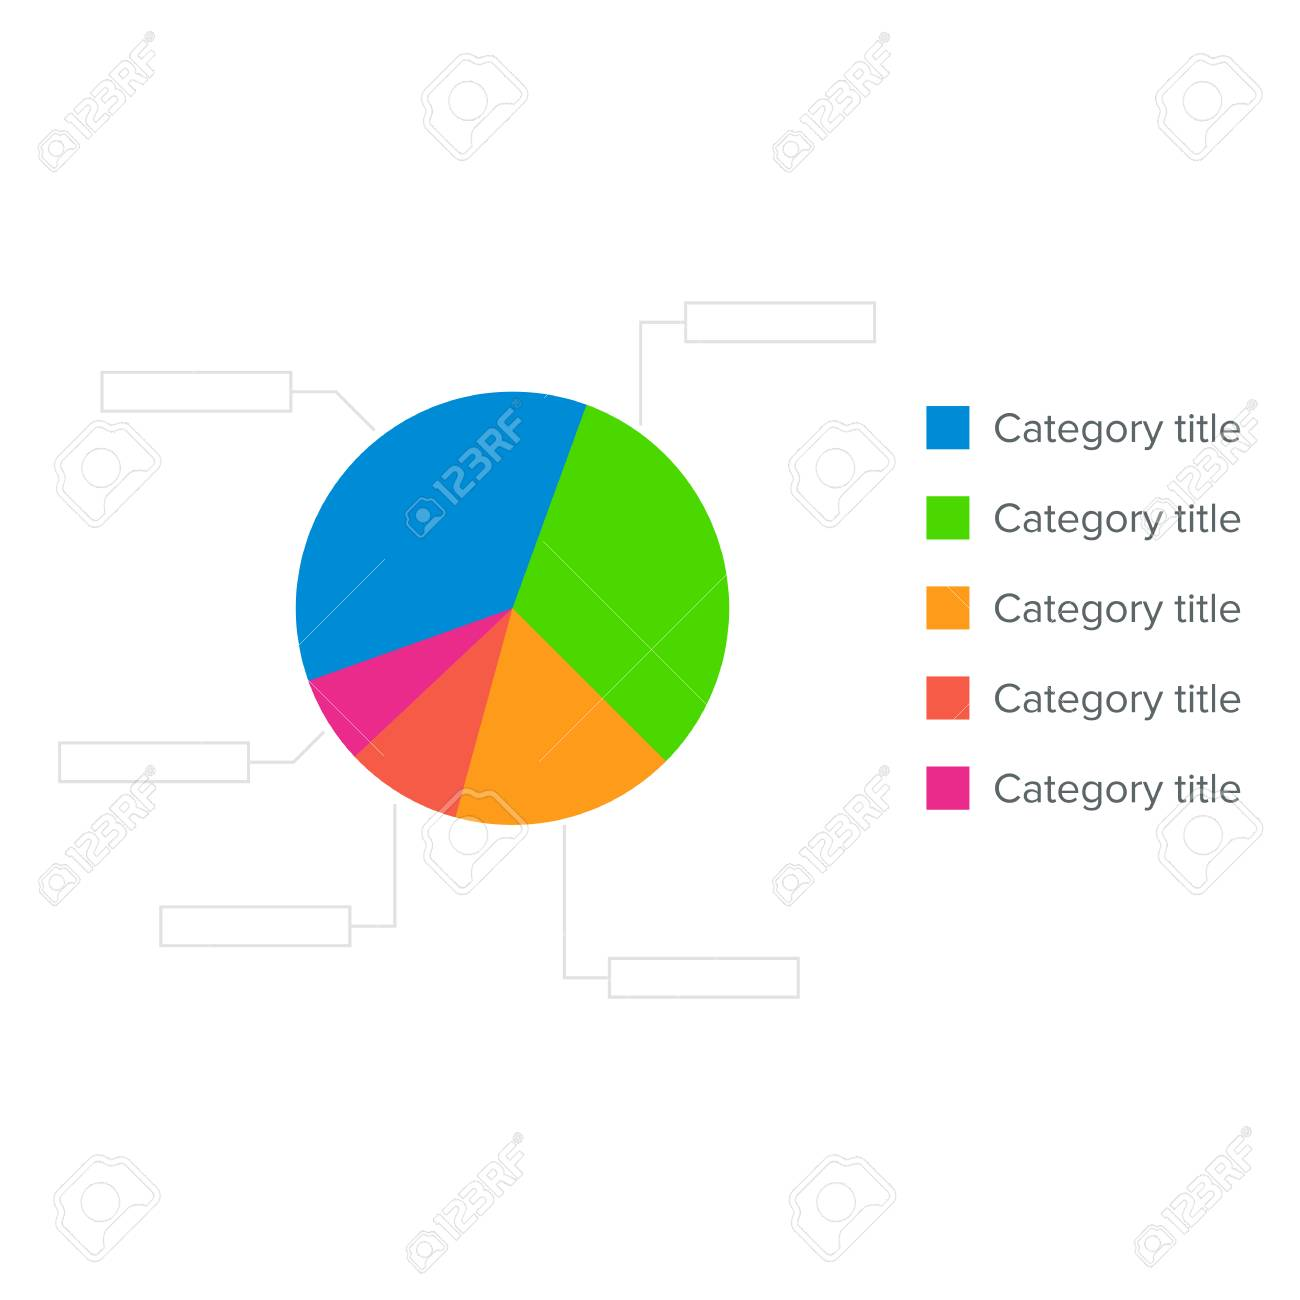 colorful business pie chart for graphic design, documents, reports